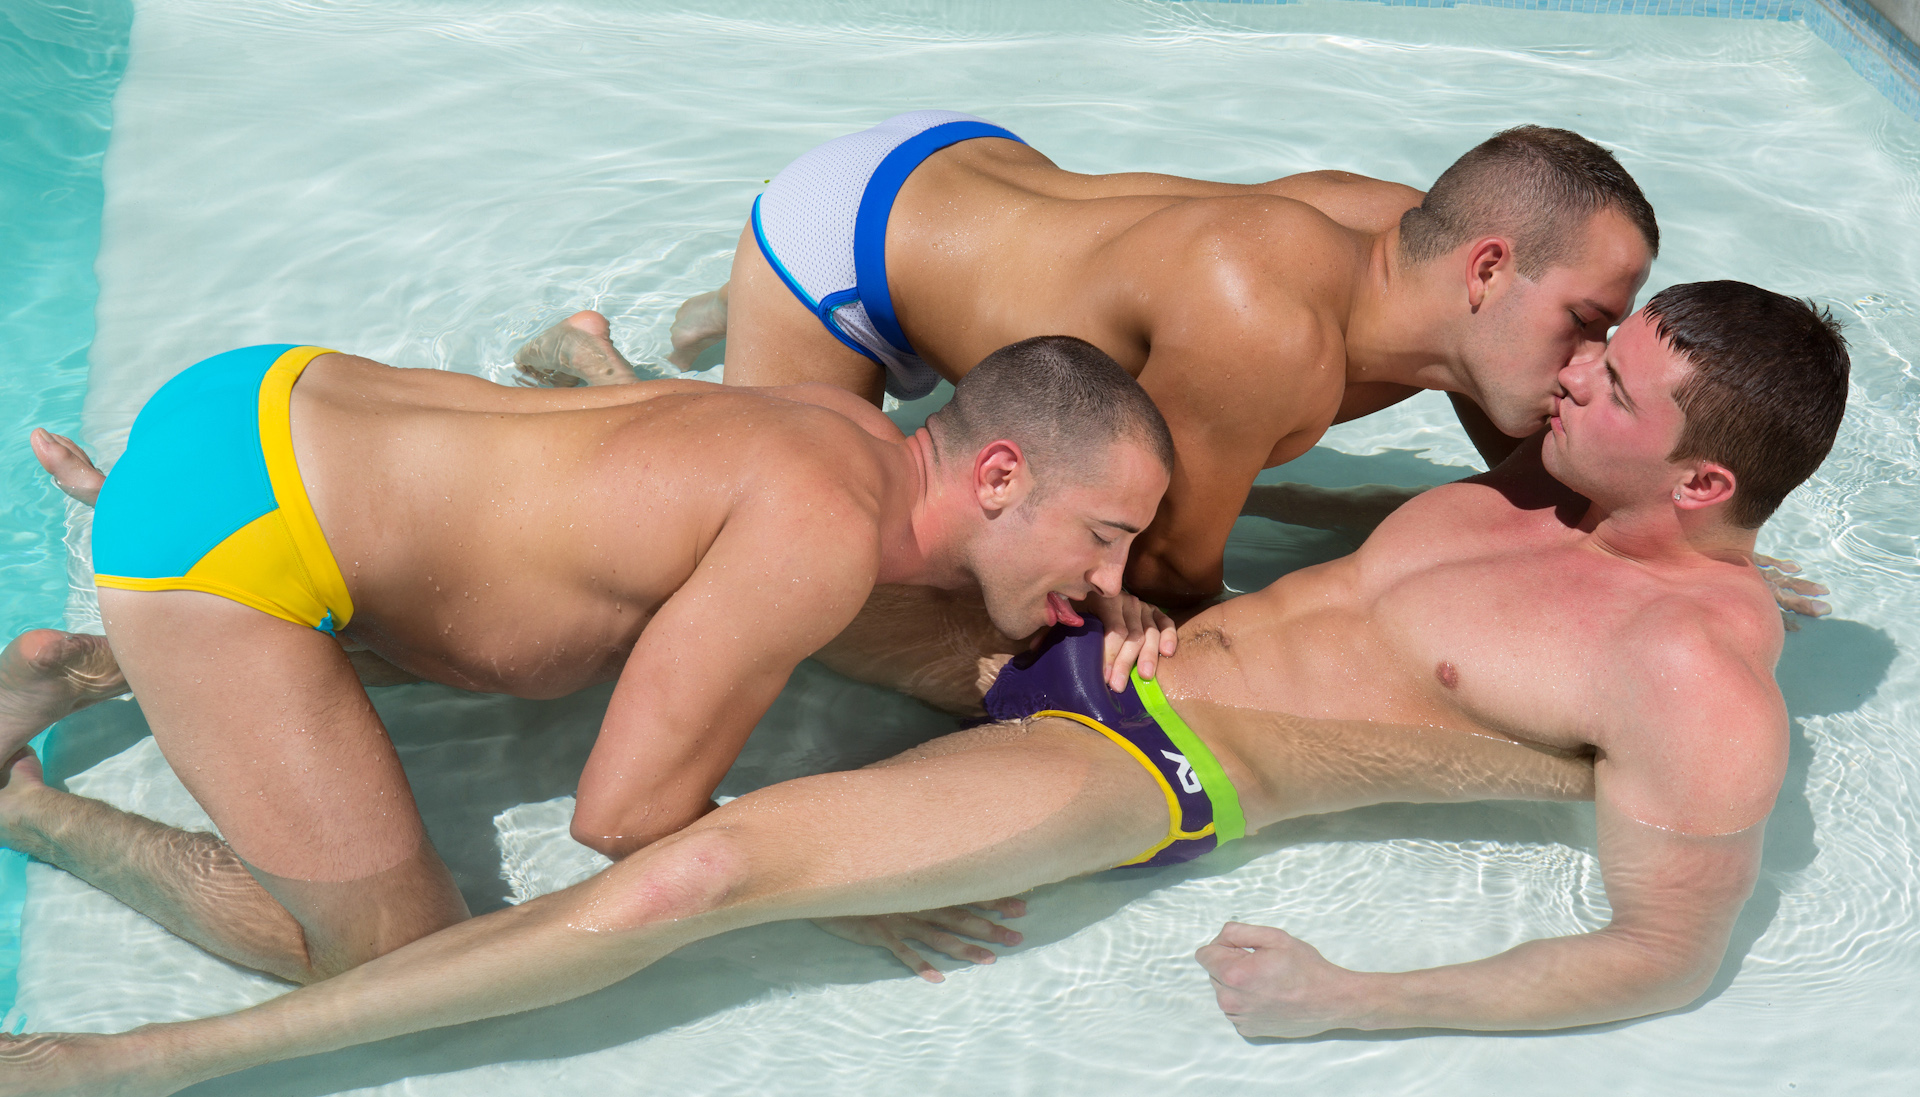 the gay pool in sex